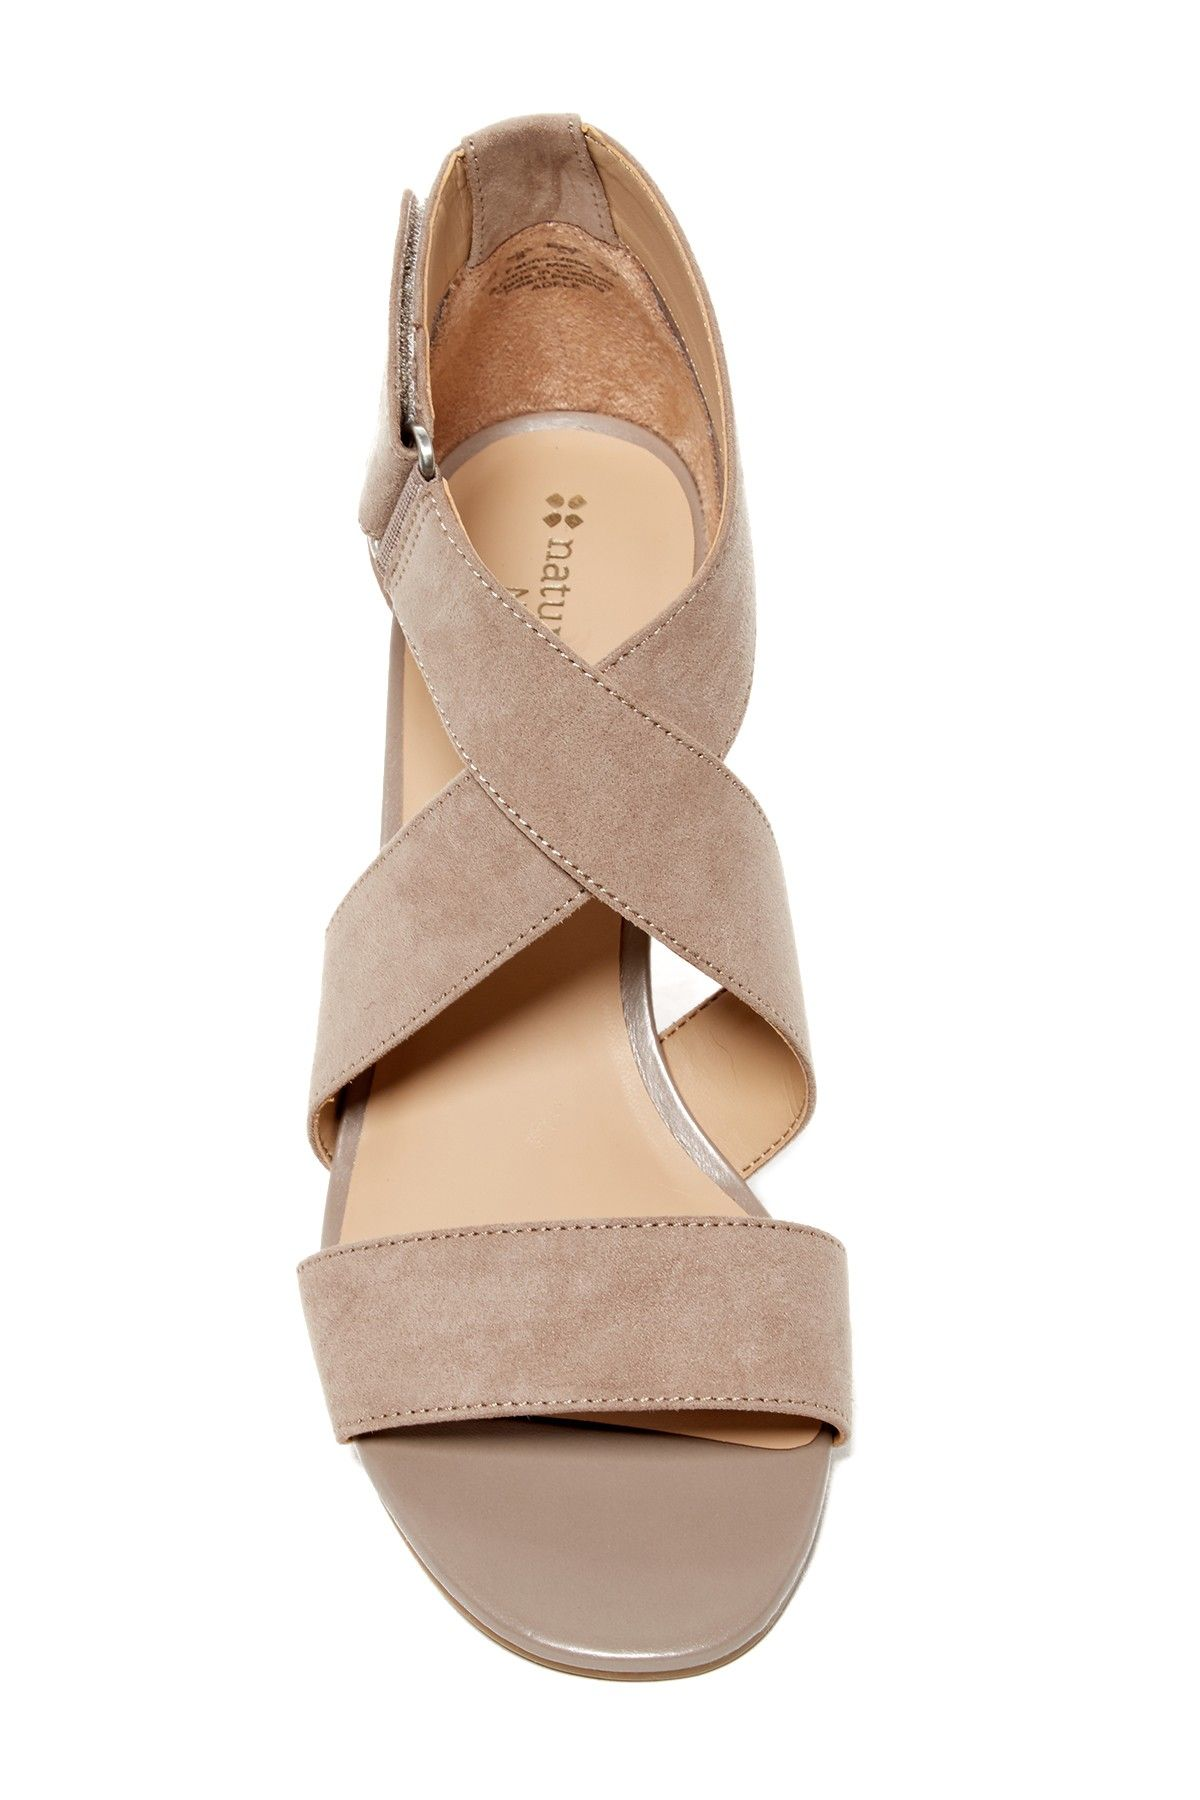 aad37c27220 Naturalizer - Adele Heeled Sandal is now 42% off. Free Shipping on orders  over  100.